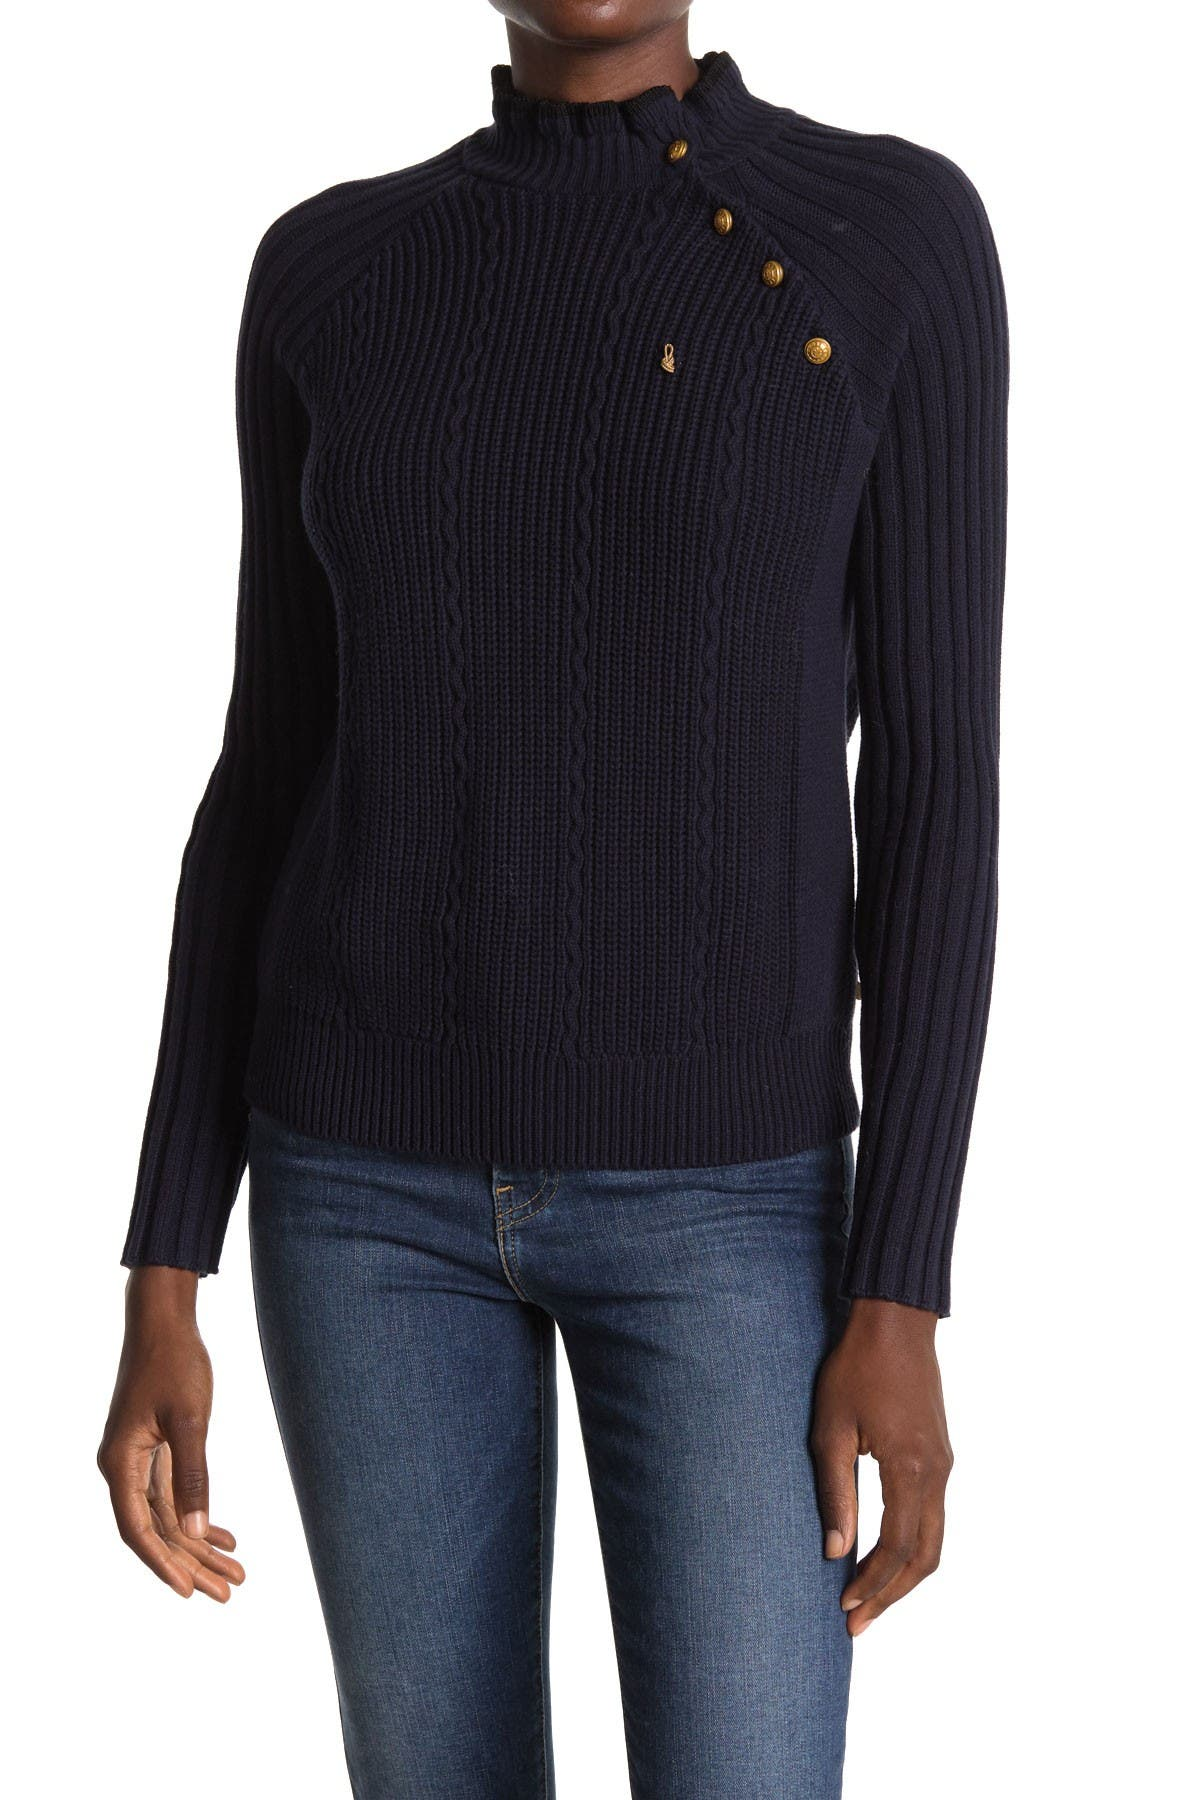 Image of Scotch & Soda Button Detail Mock Neck Sweater